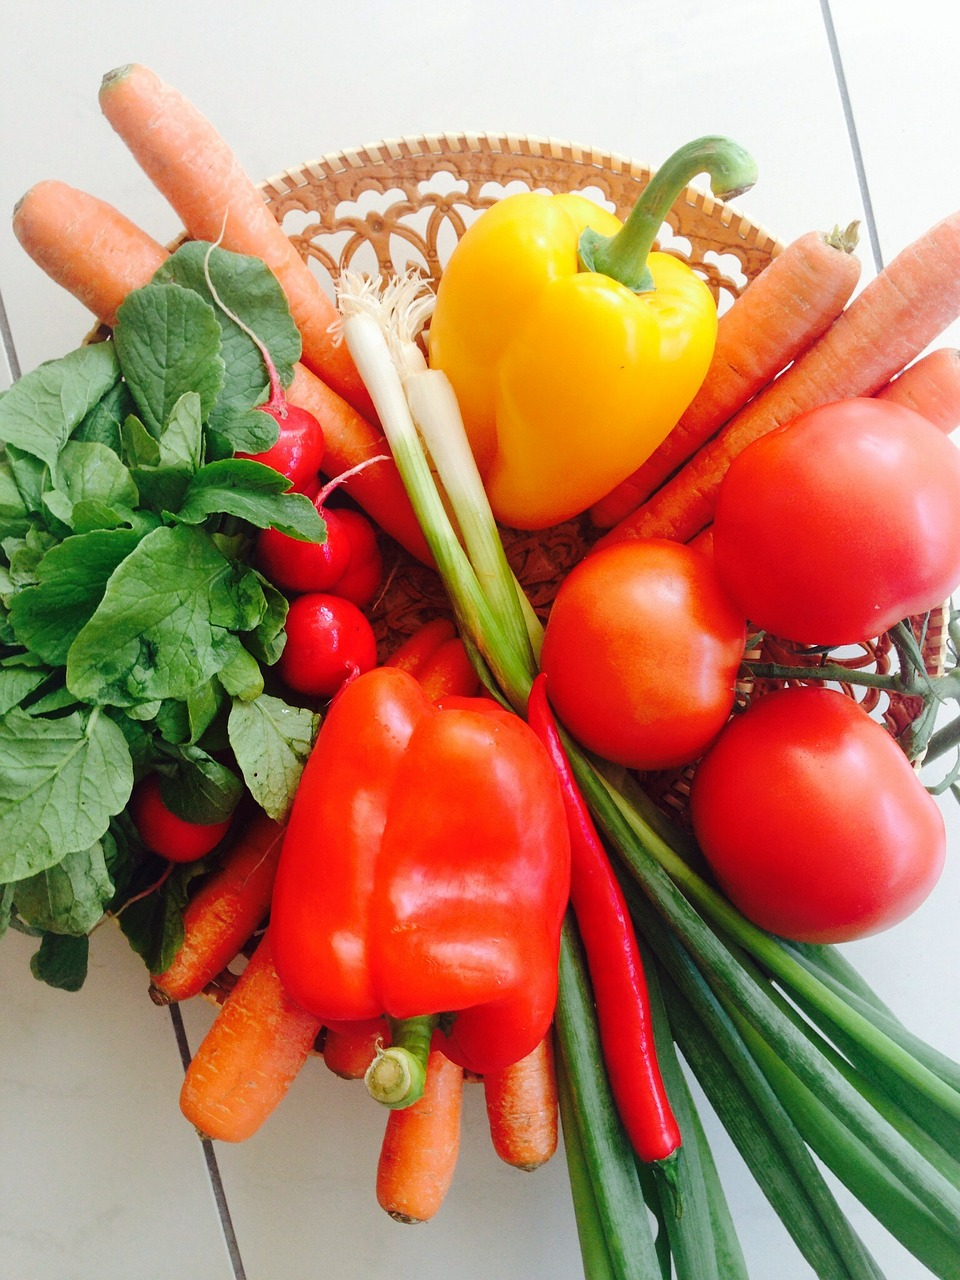 Vegetables can actually help whiten your teeth.